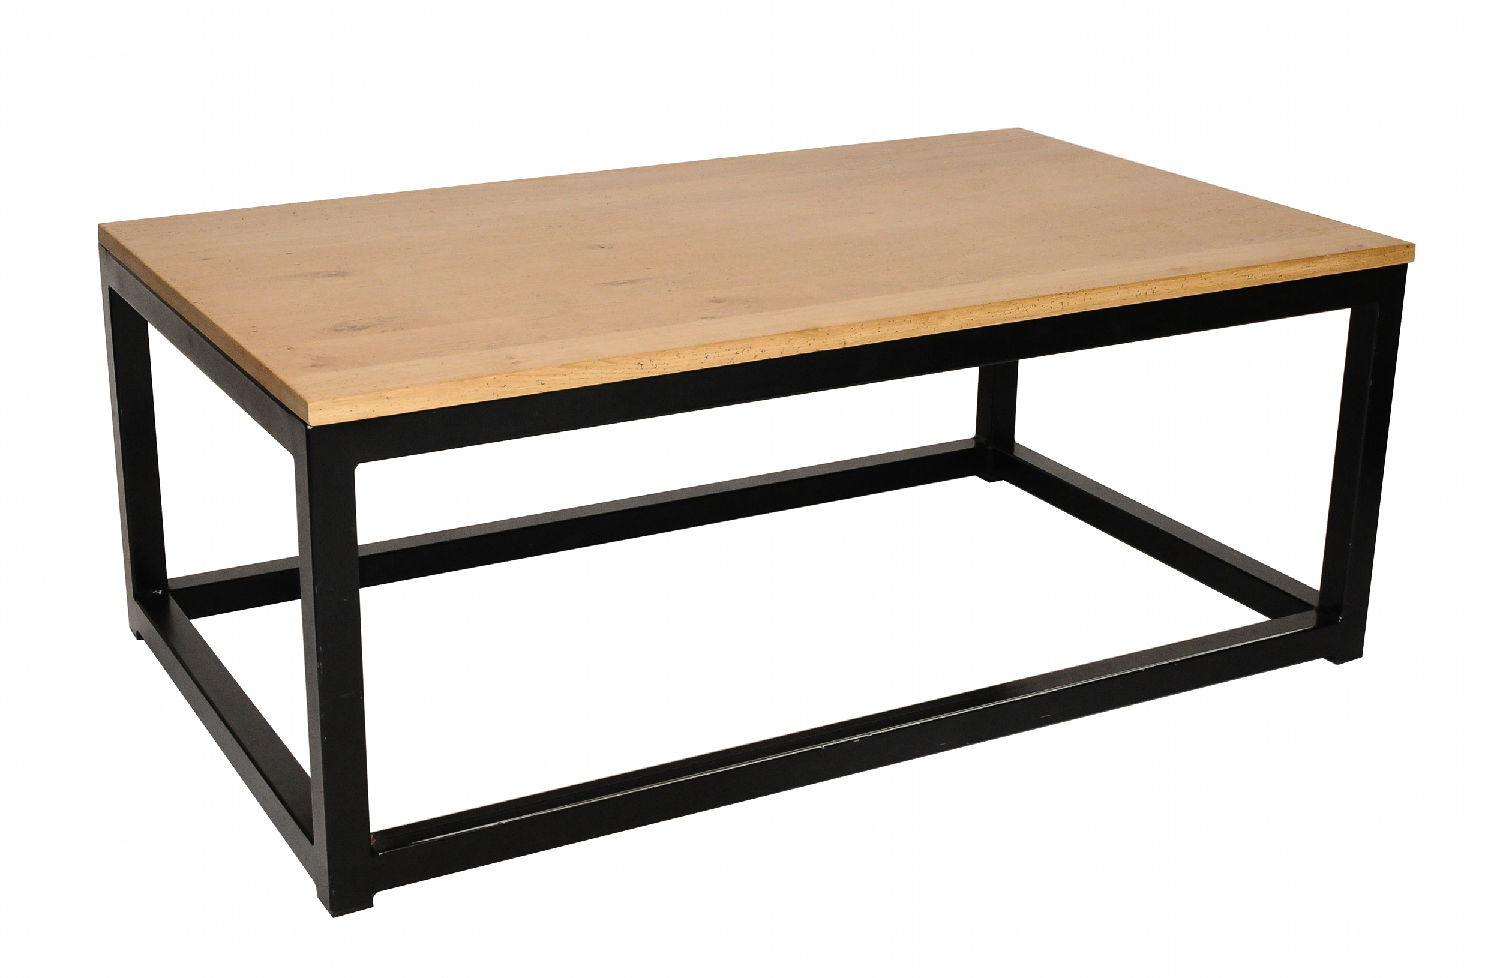 Table basse en fer et bois id es de d coration for Table basse en fer